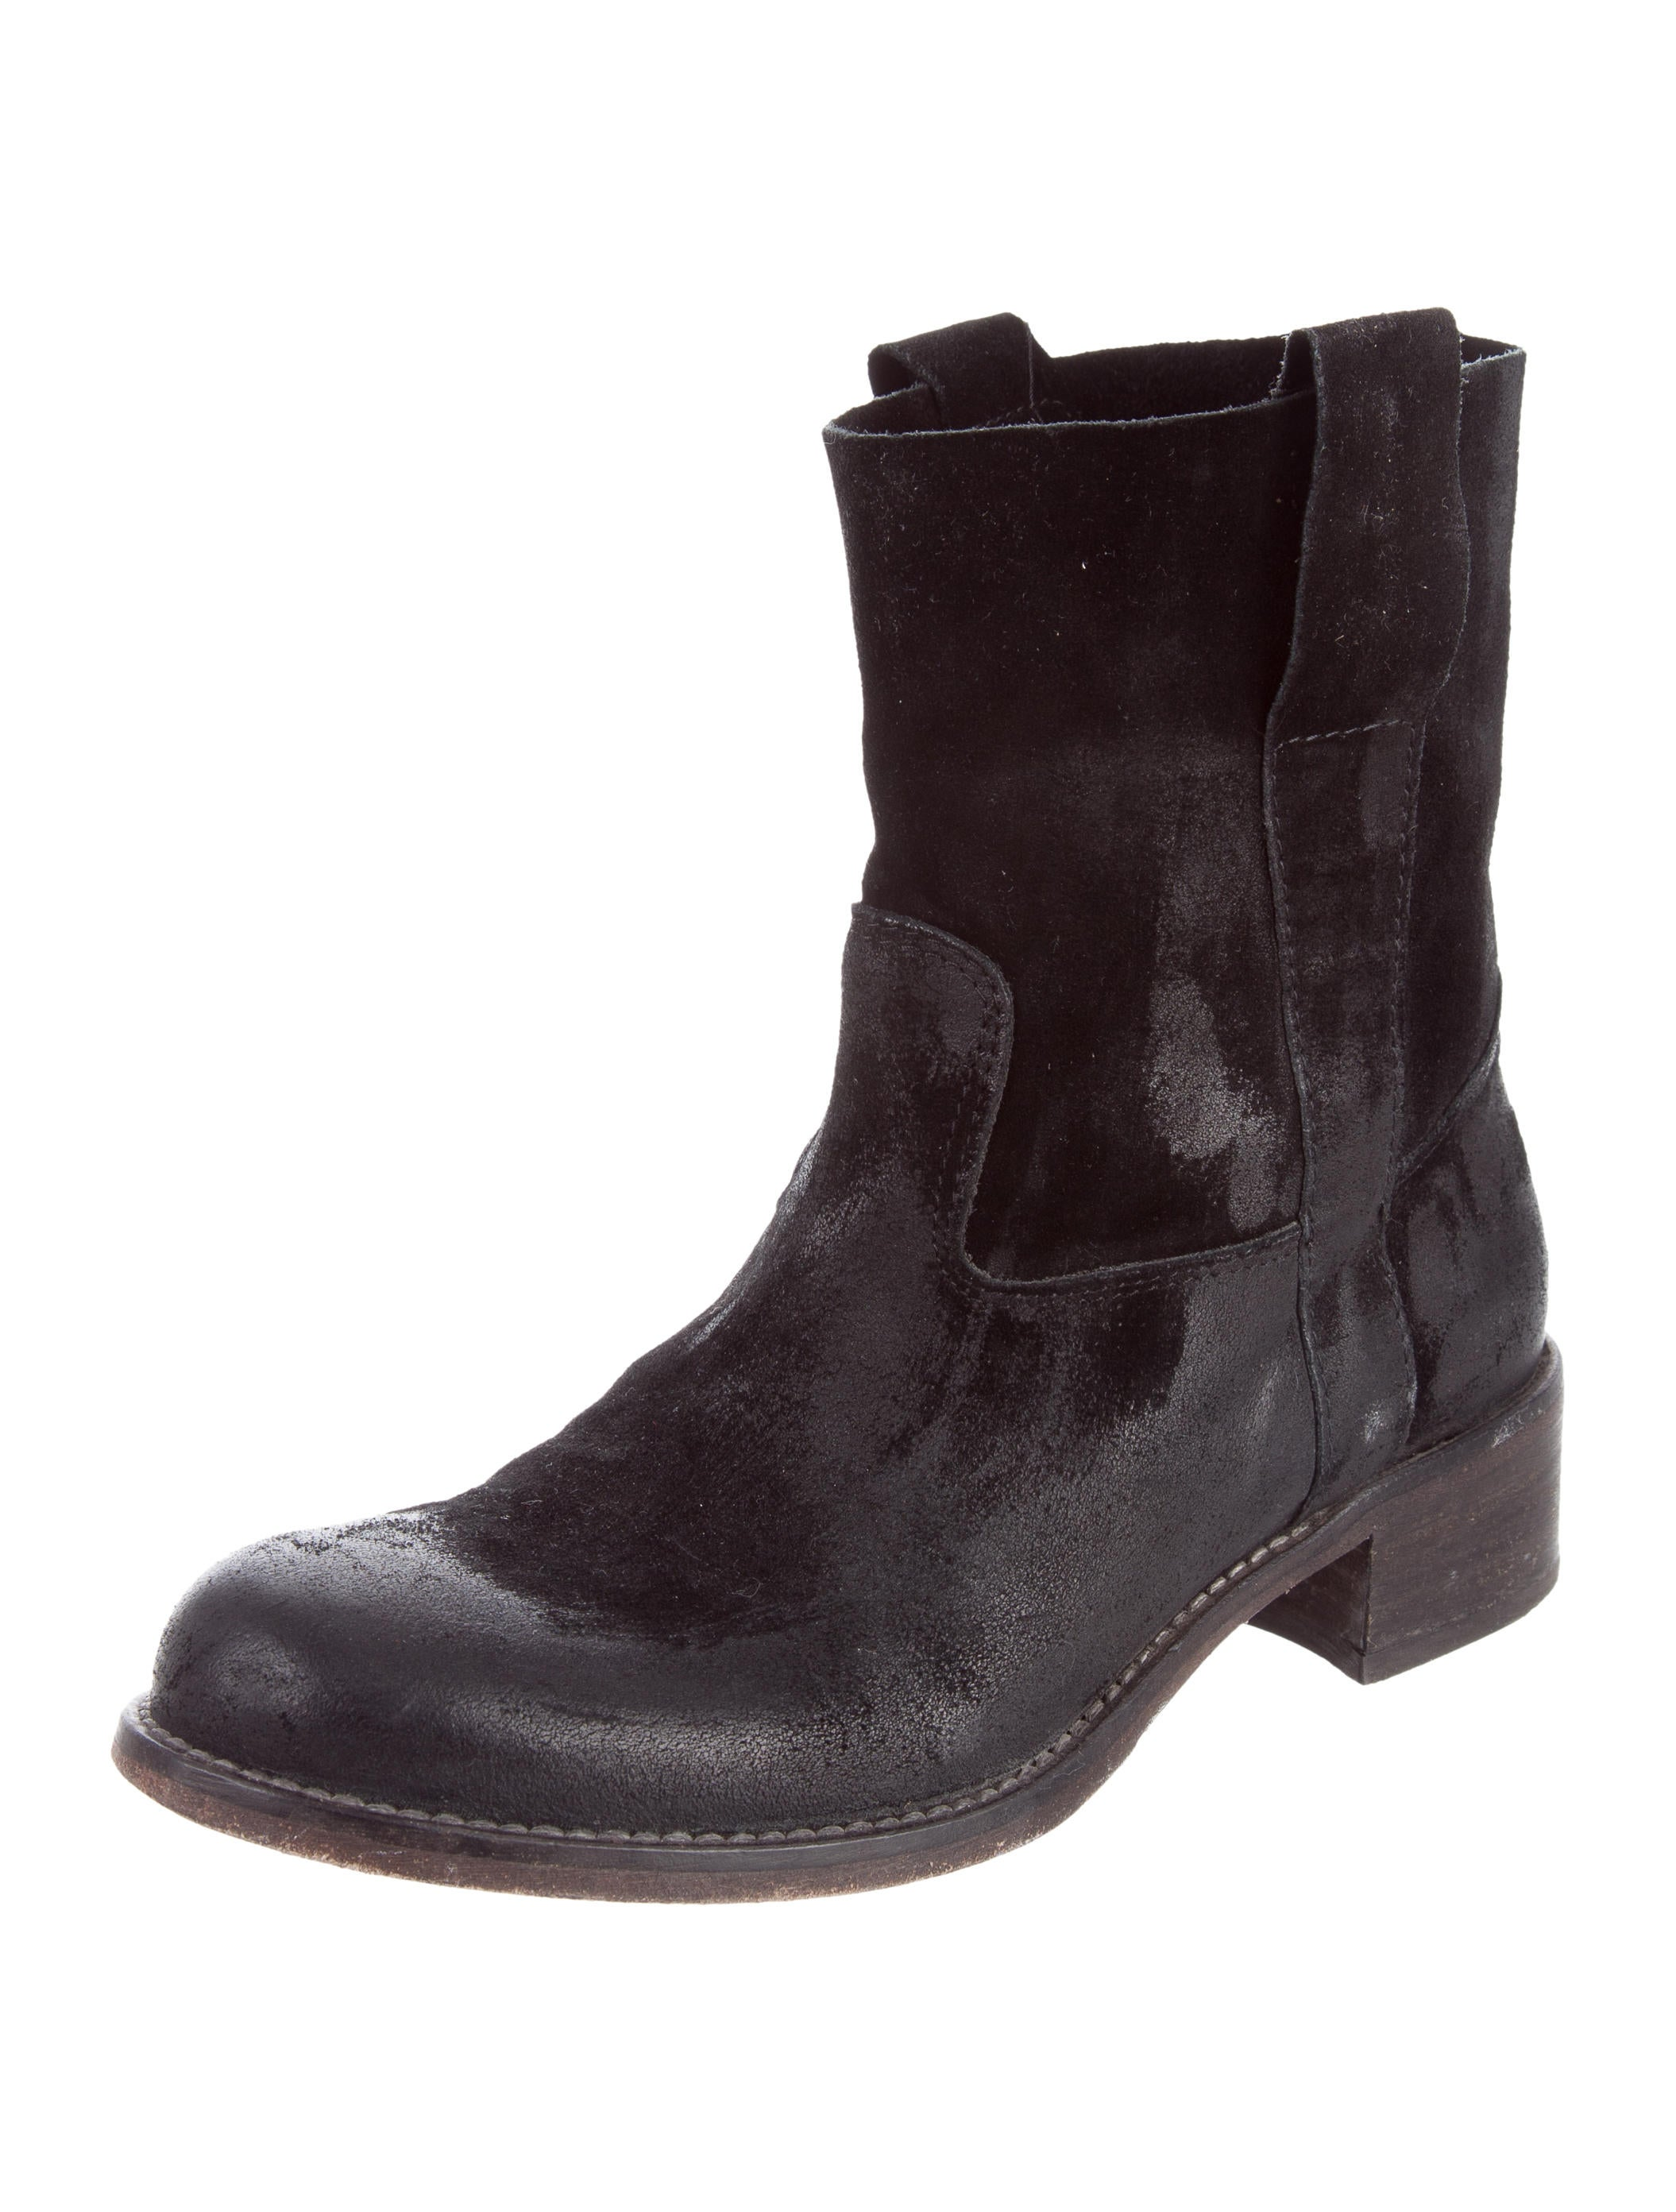 barney s distressed suede ankle boots shoes bar20296